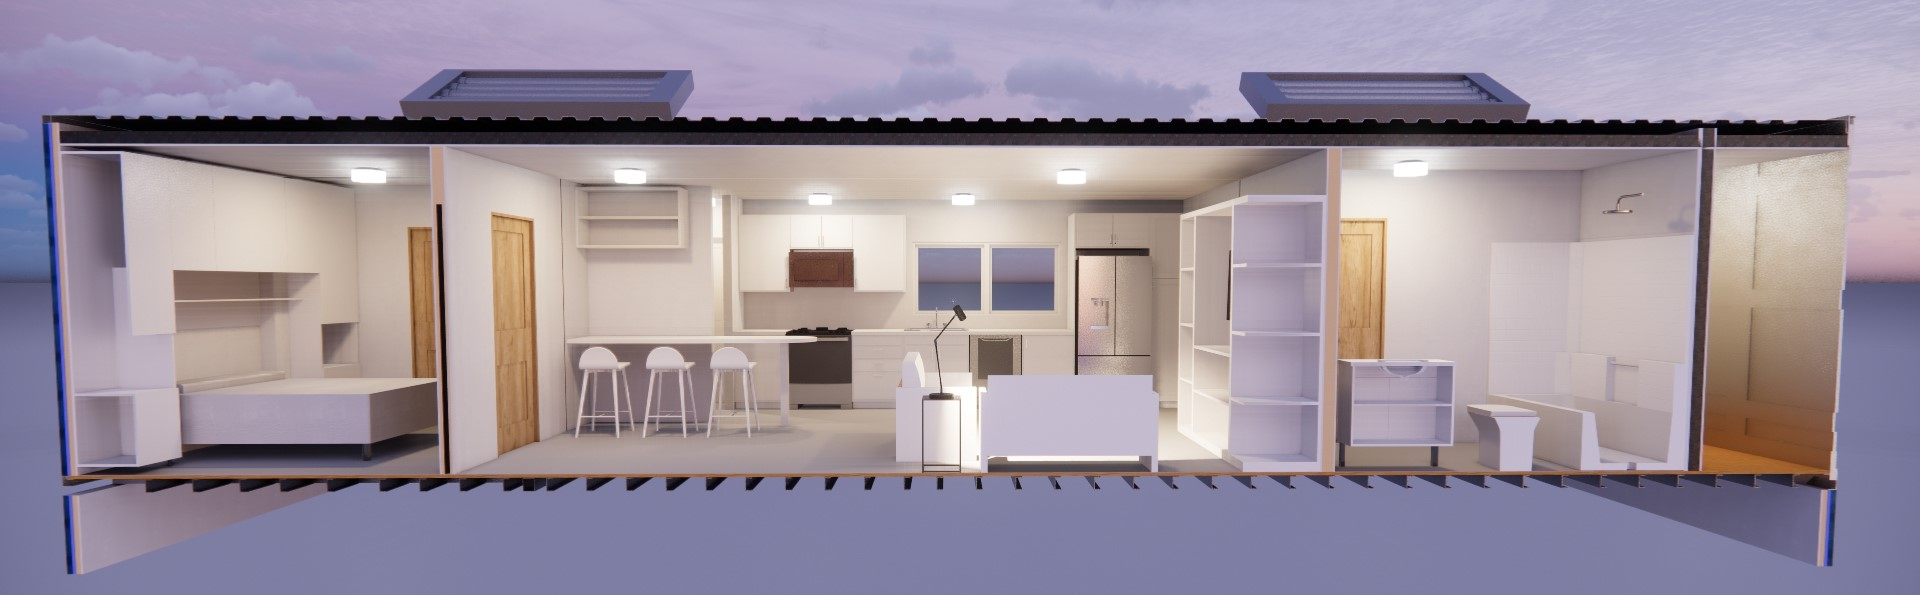 2 Bedroom Section